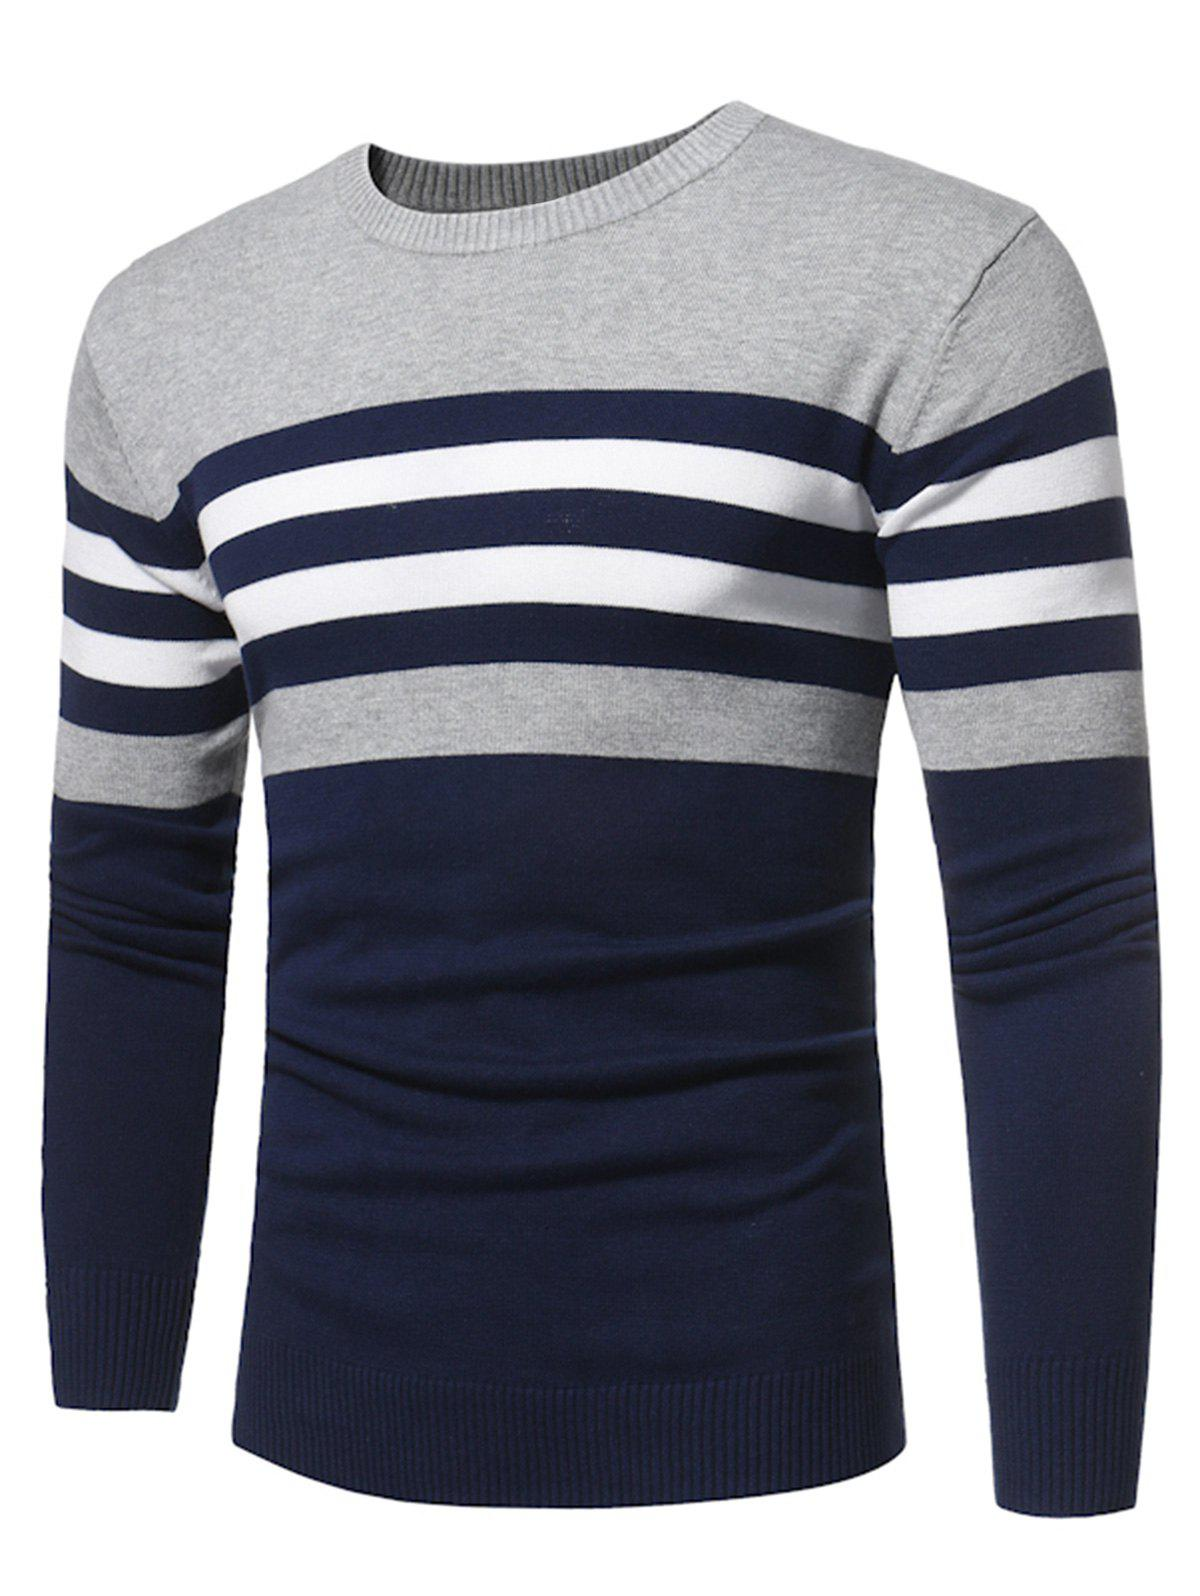 Crew Neck Color Block Stripe Panel Knitted Sweater 232242914